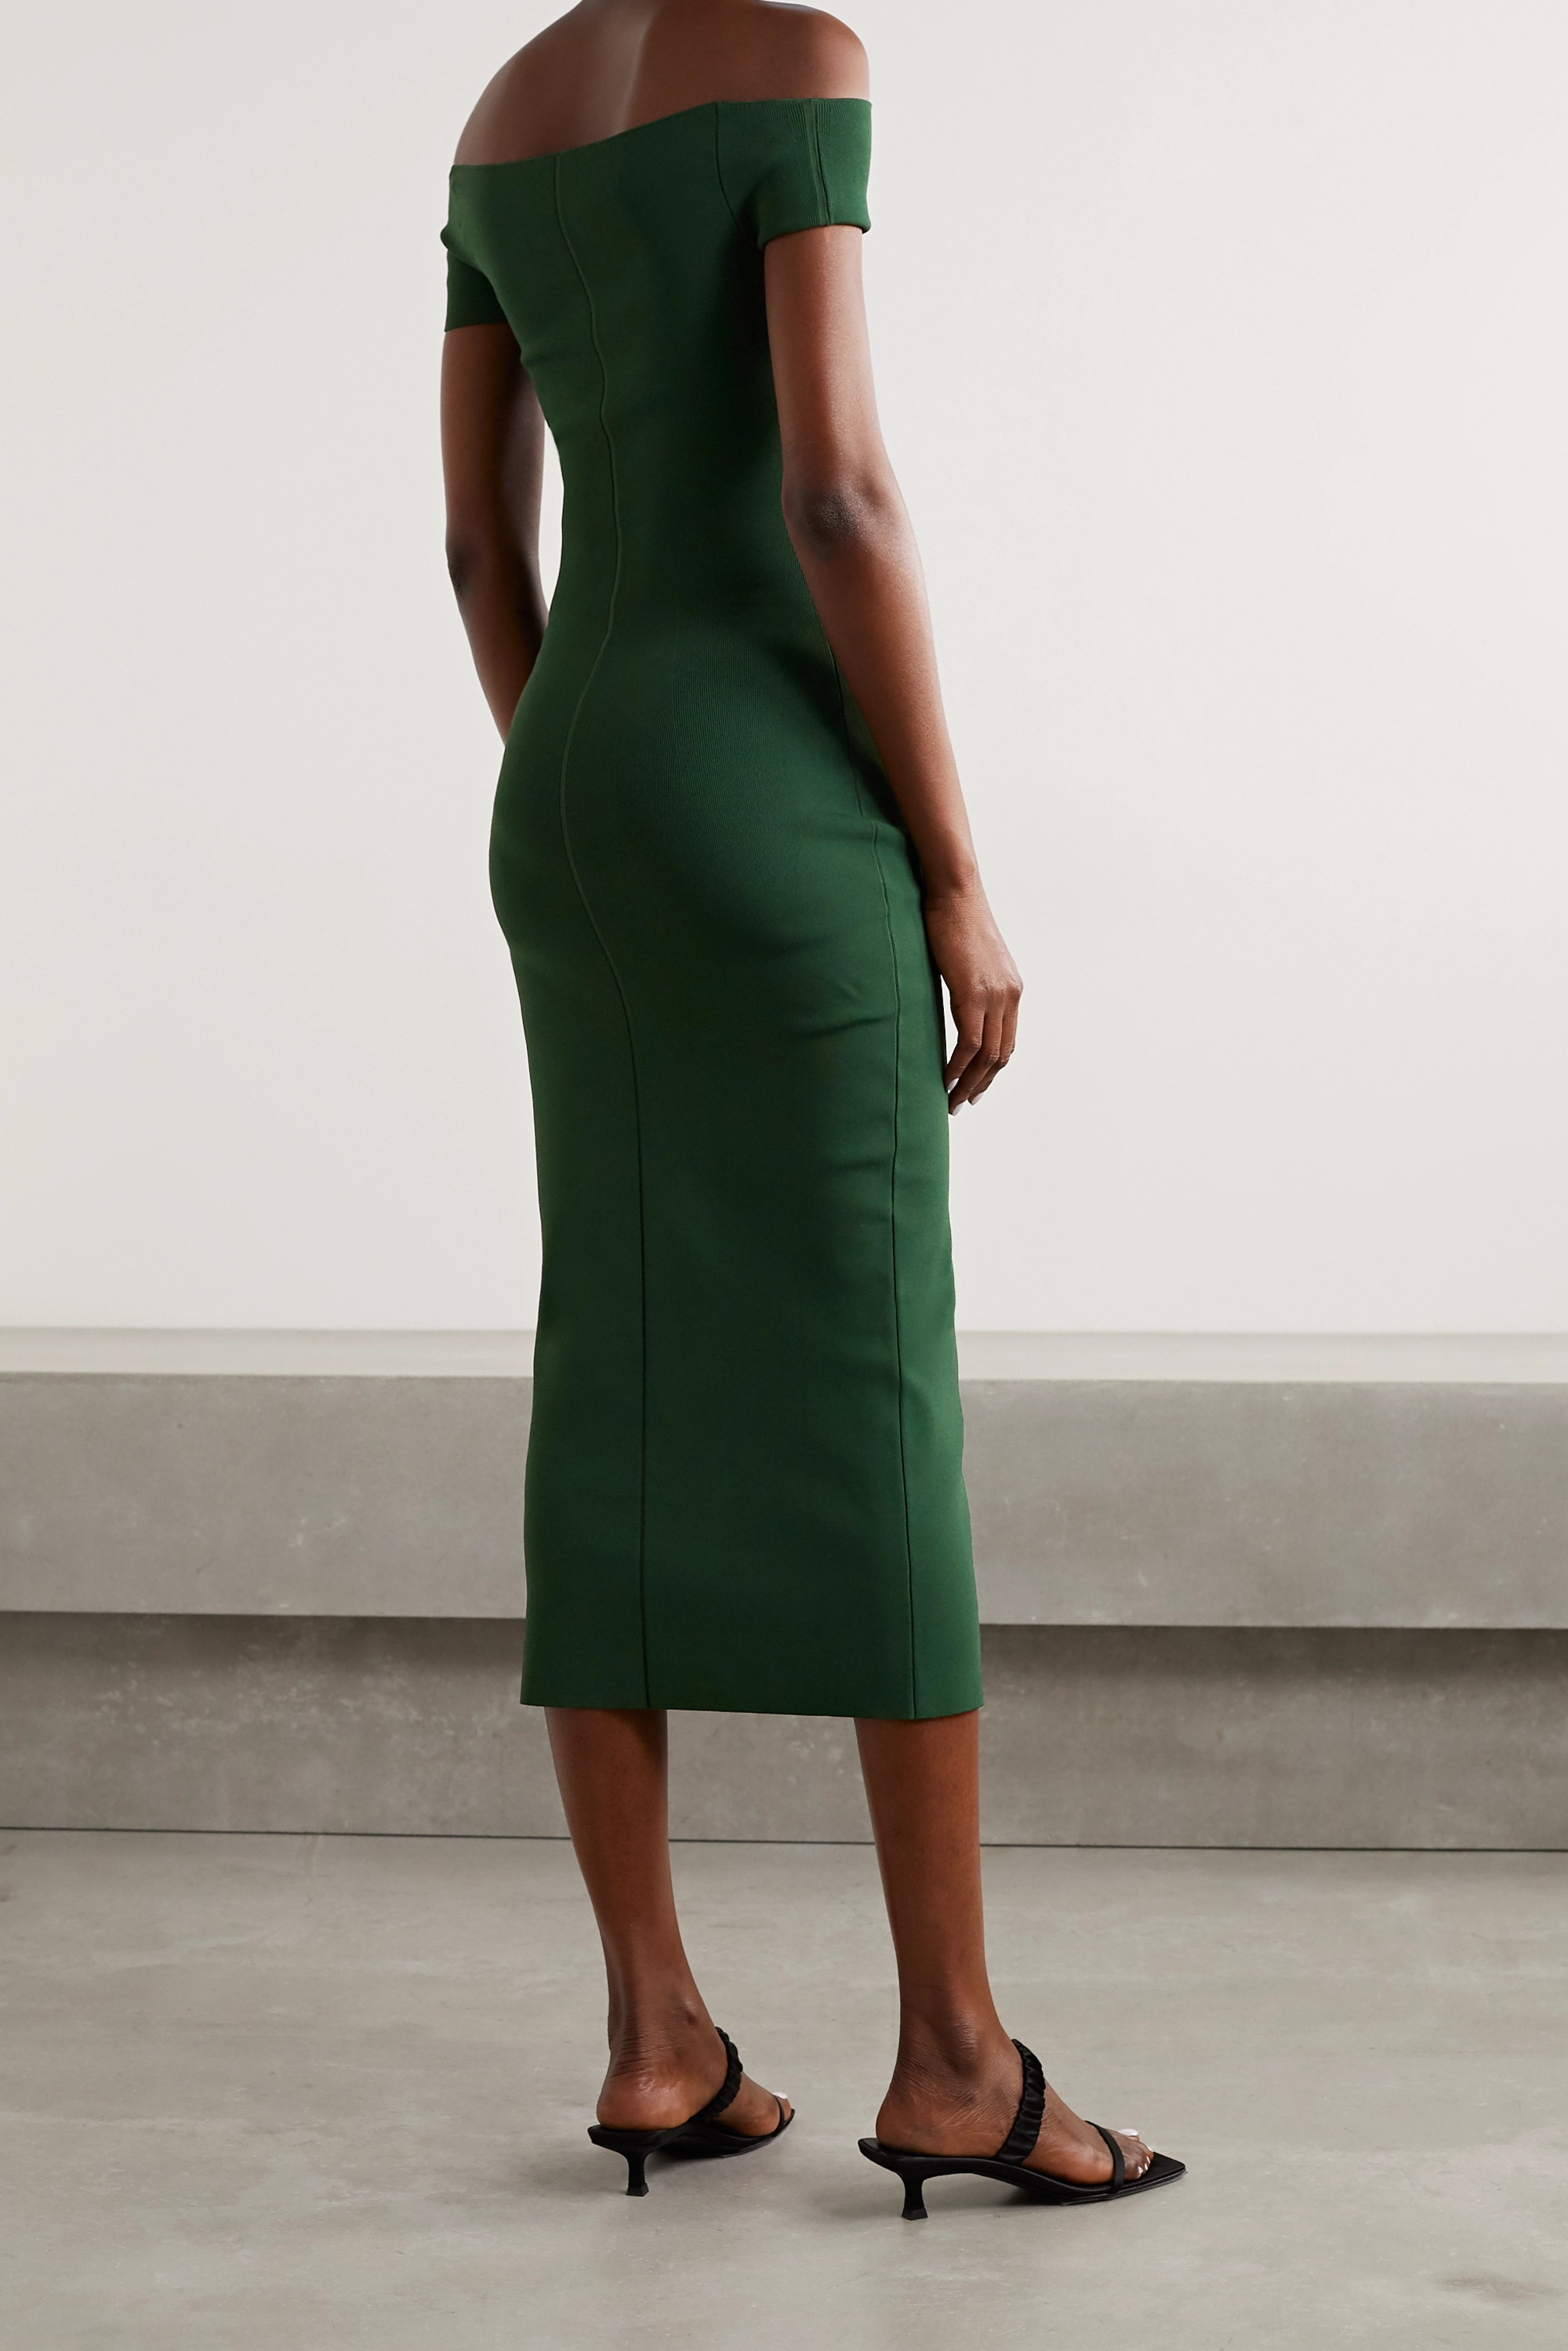 KHAITE Marika off-the-shoulder cutout stretch-knit midi dress